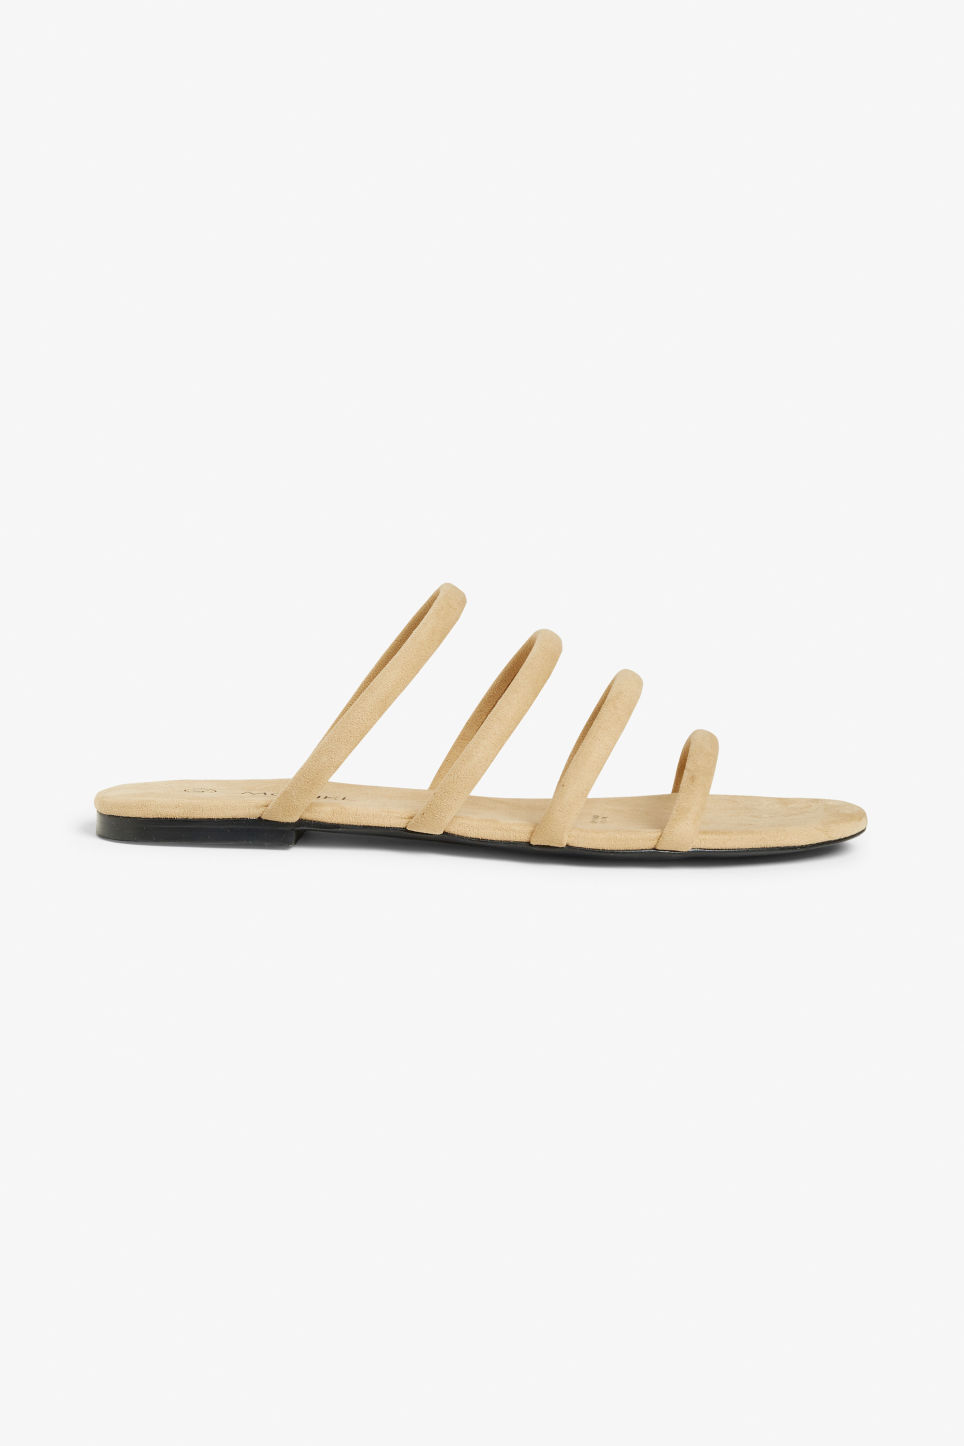 Detailed image of Monki faux suede slip-on sandals in beige